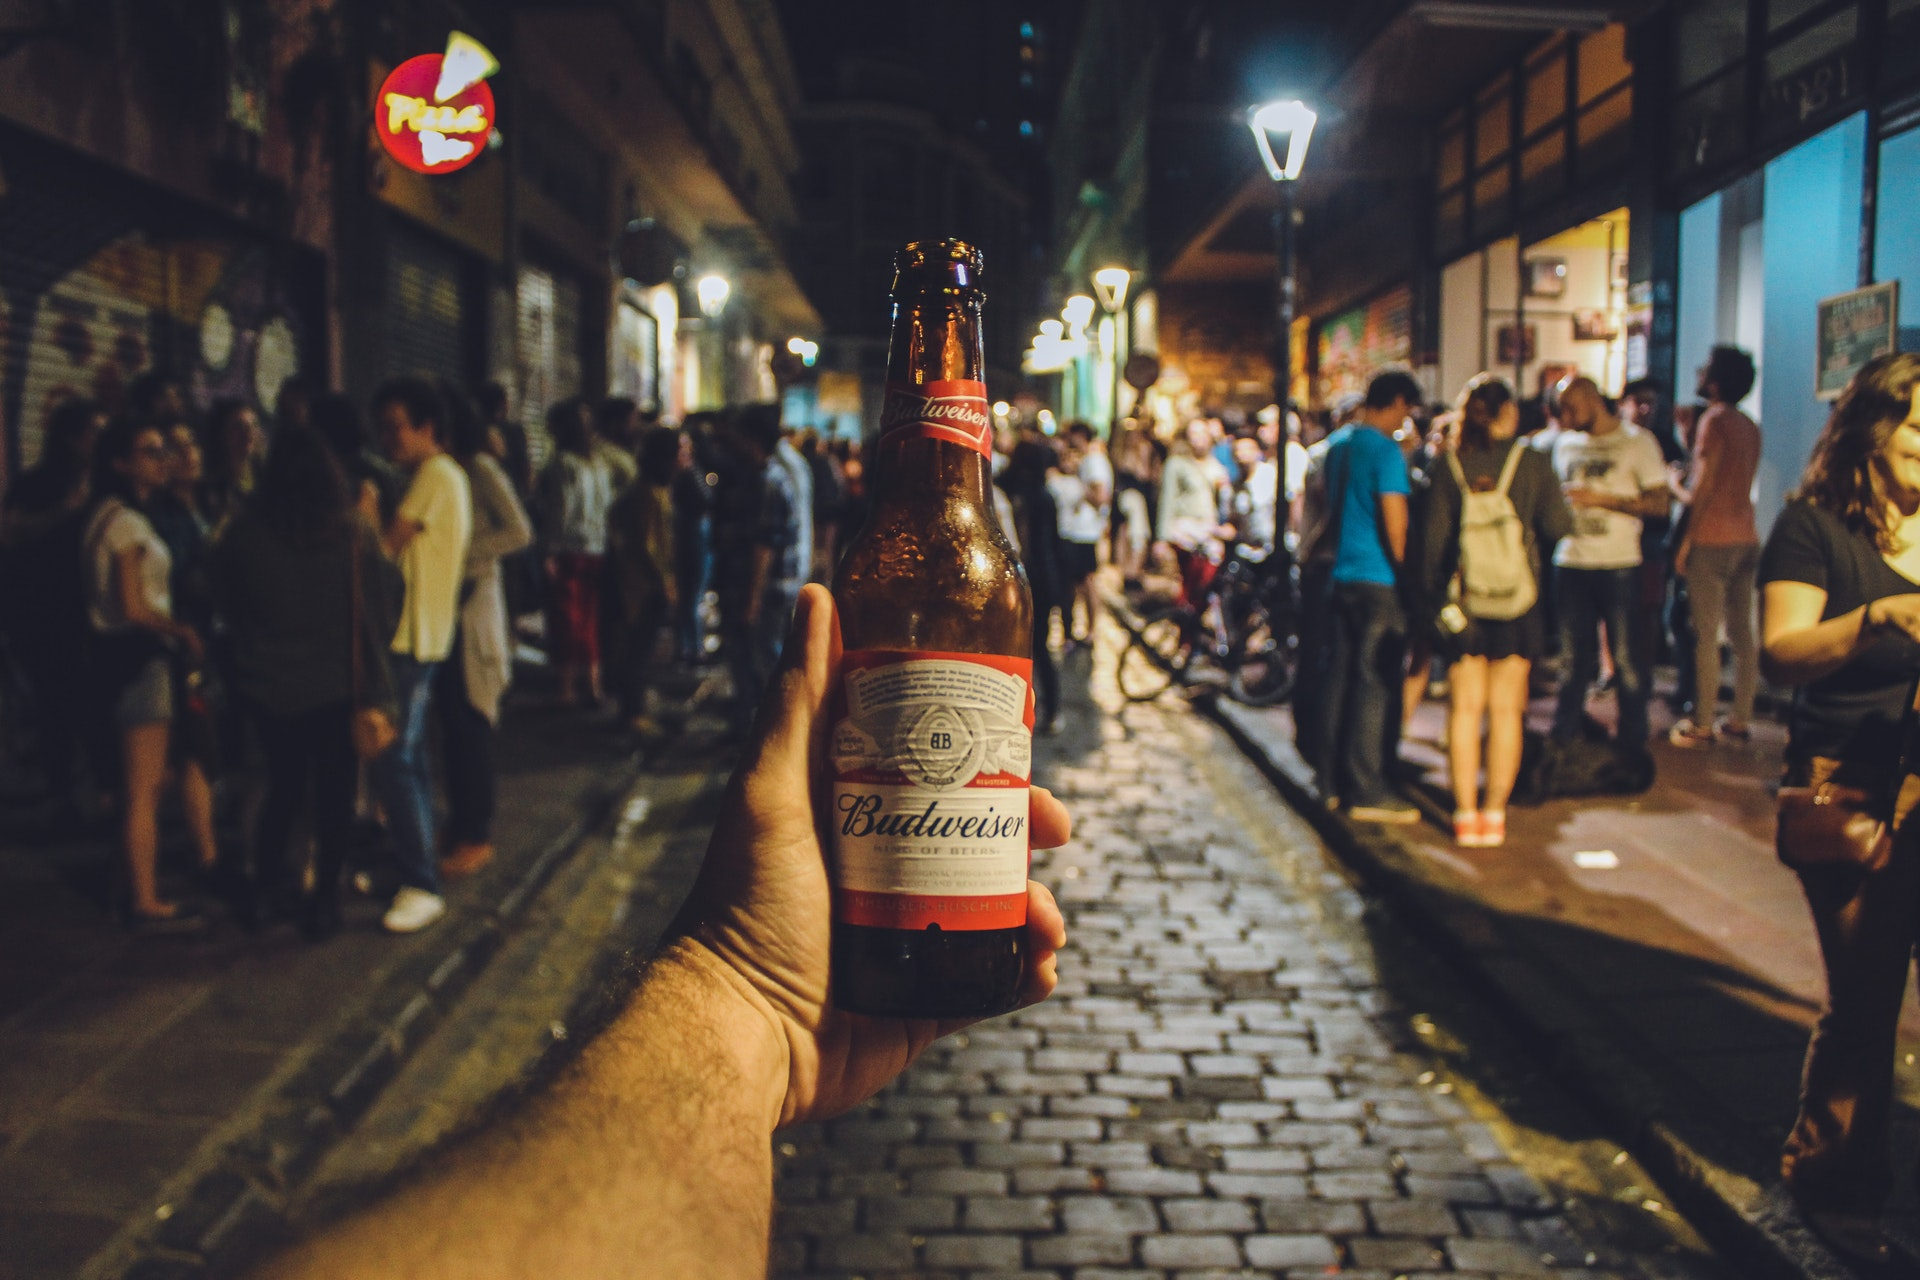 a hand holding a bottle of Budweiser in a bar crawl night